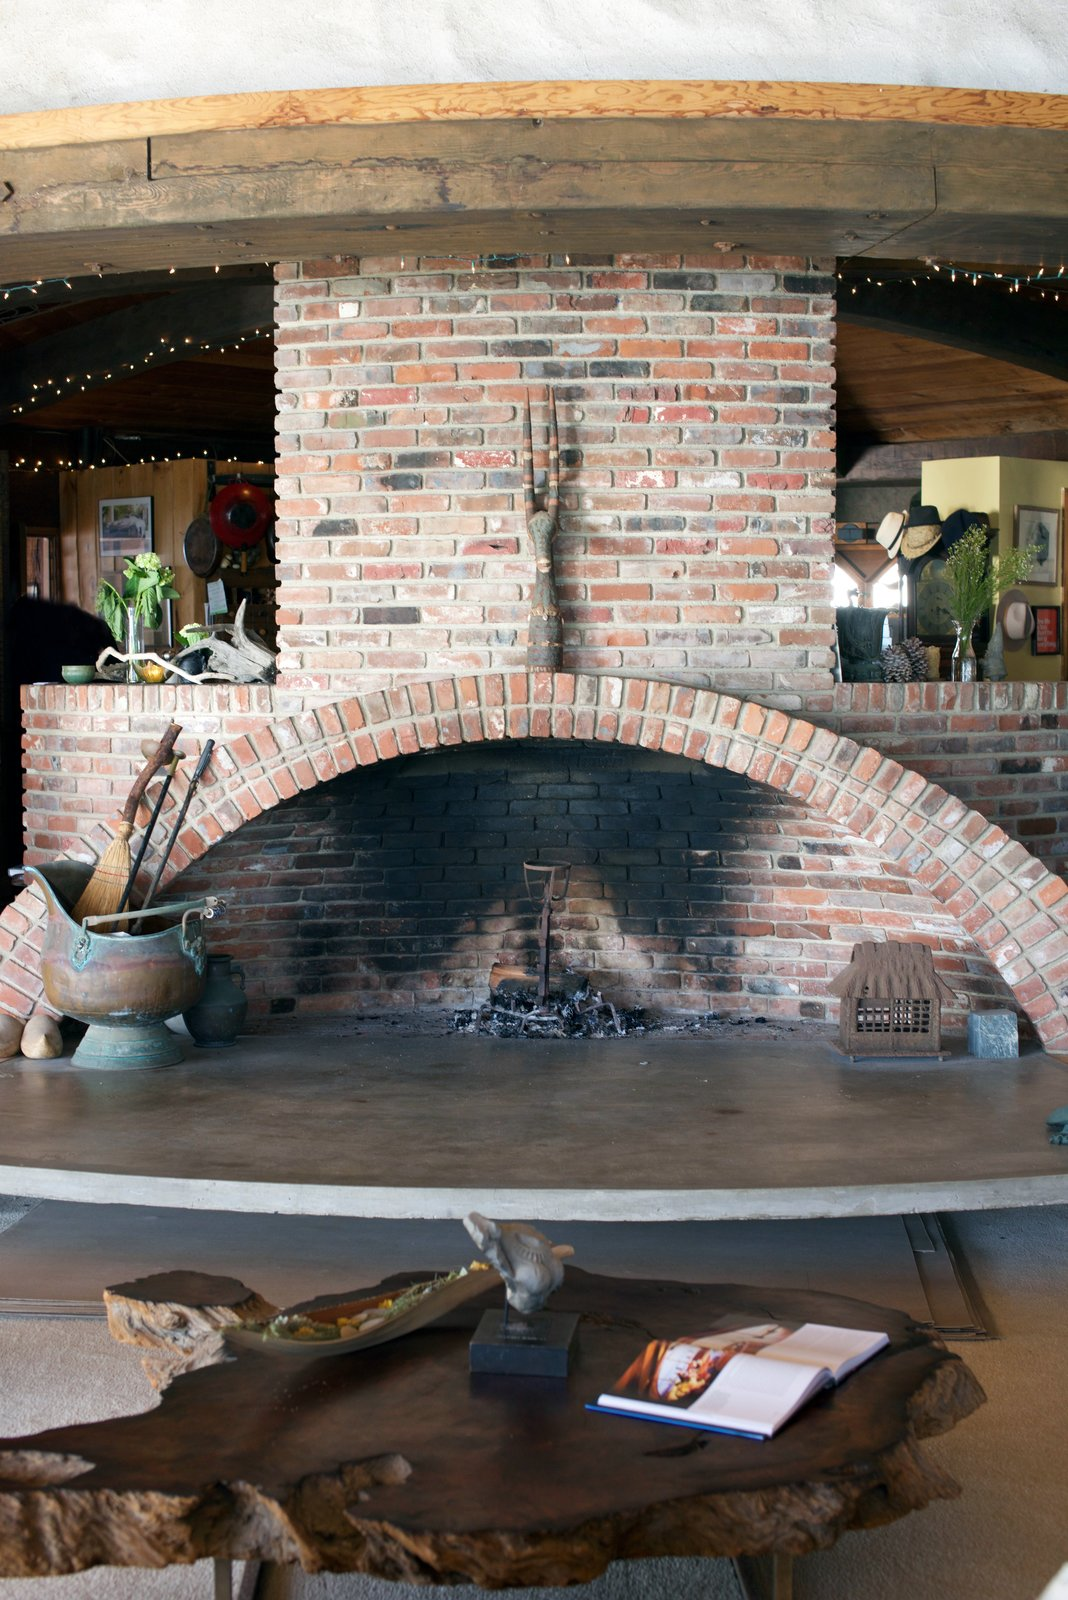 The kitchen is found on the other side of the fireplace. #harrygesner #sandcastle #iconichouses  Best Photos from Behind the Scenes at Harry Gesner's Sandcastl